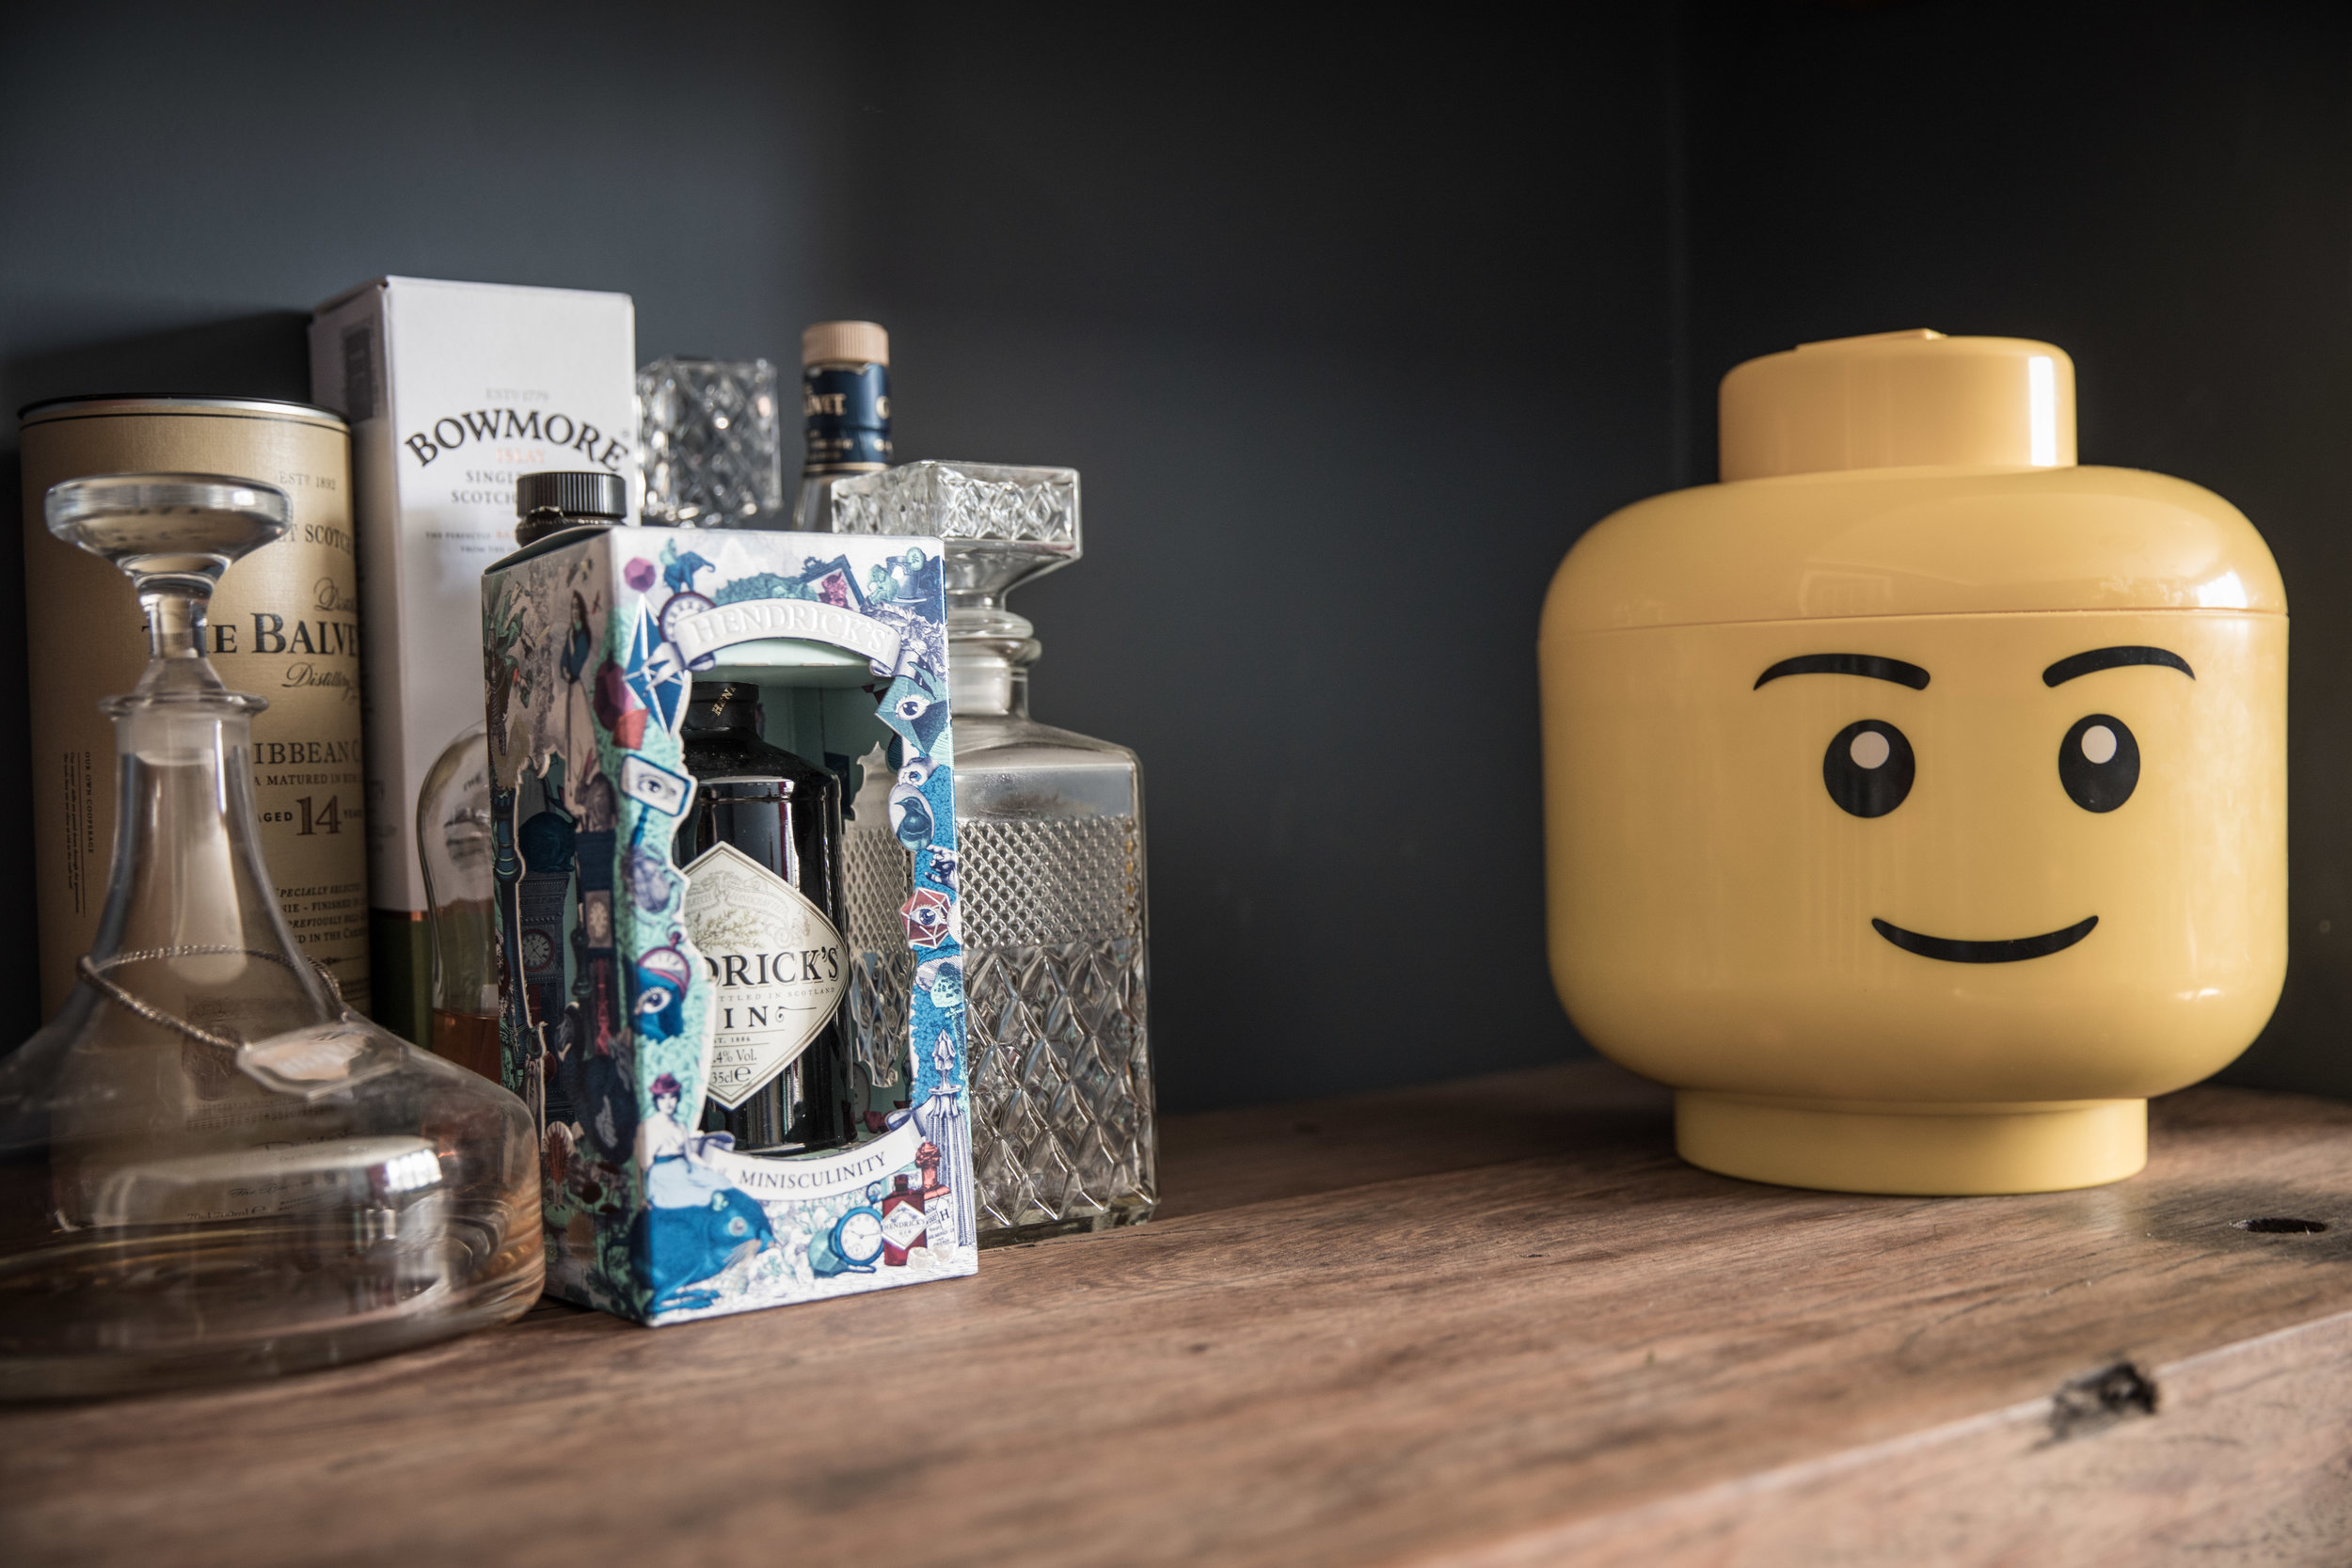 Lego head and cocktail ingredients